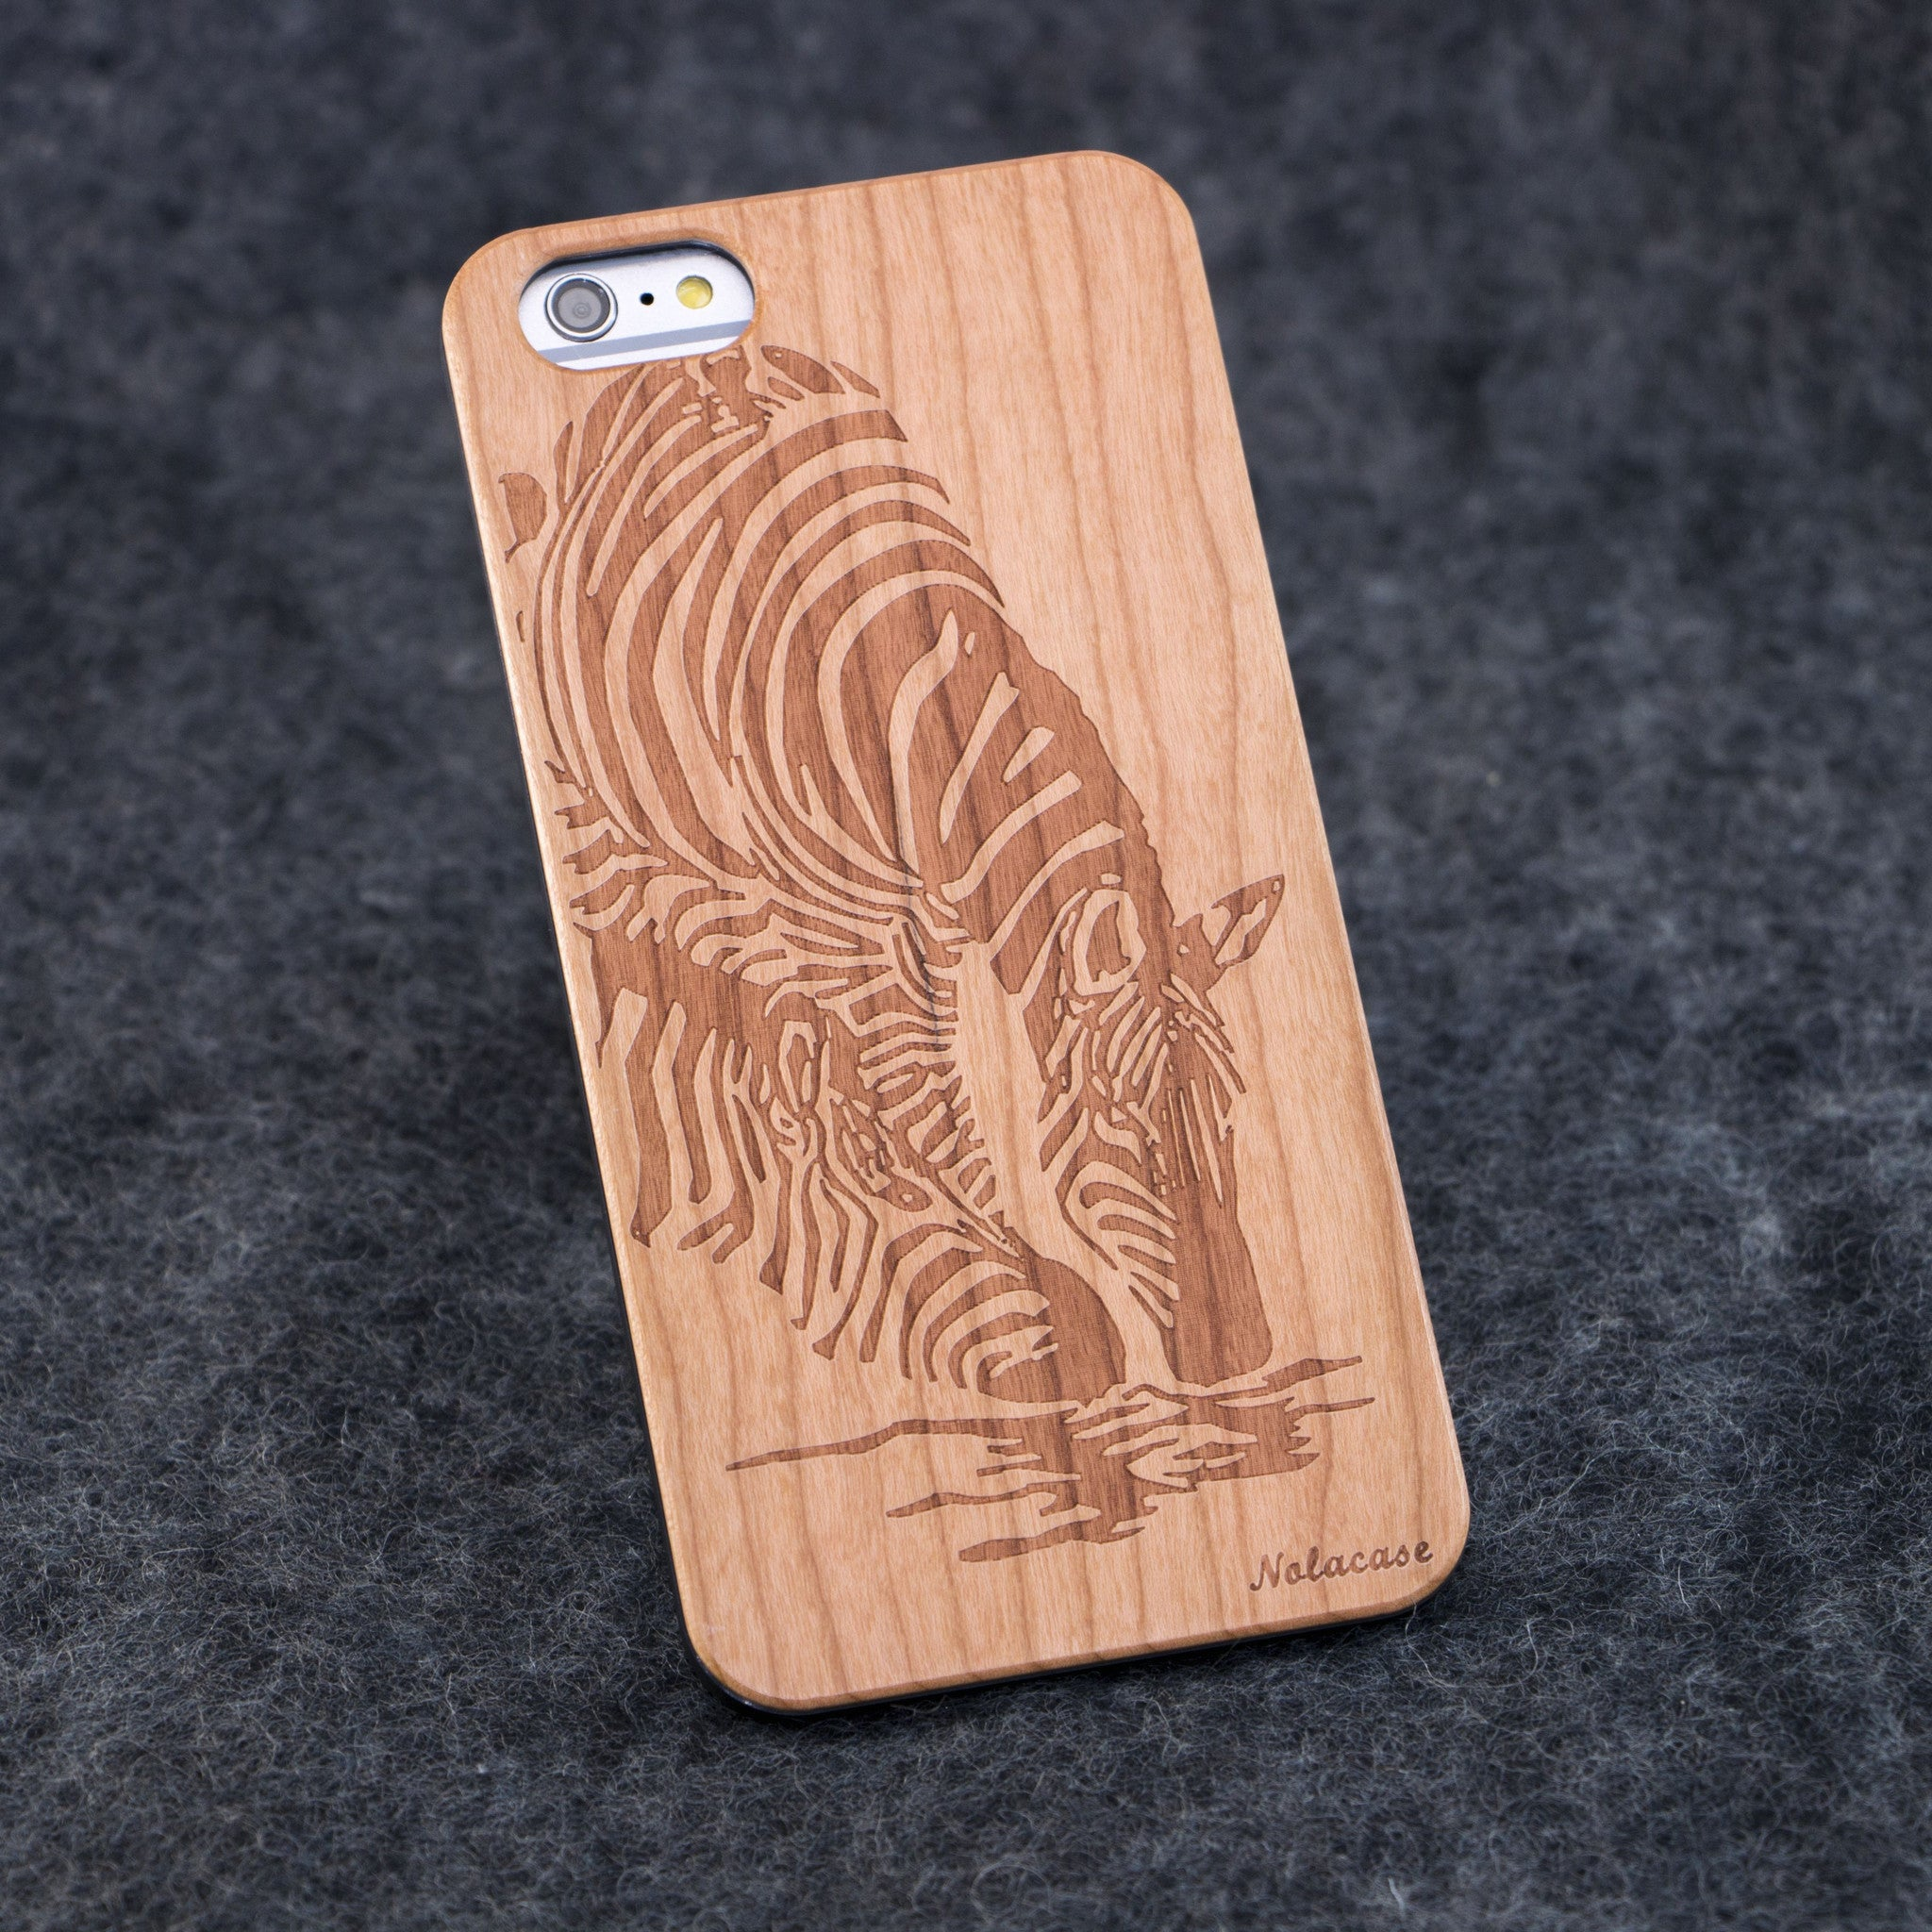 iPhone 6+ Zebra Slim Wood Case - NOLACASE - 1